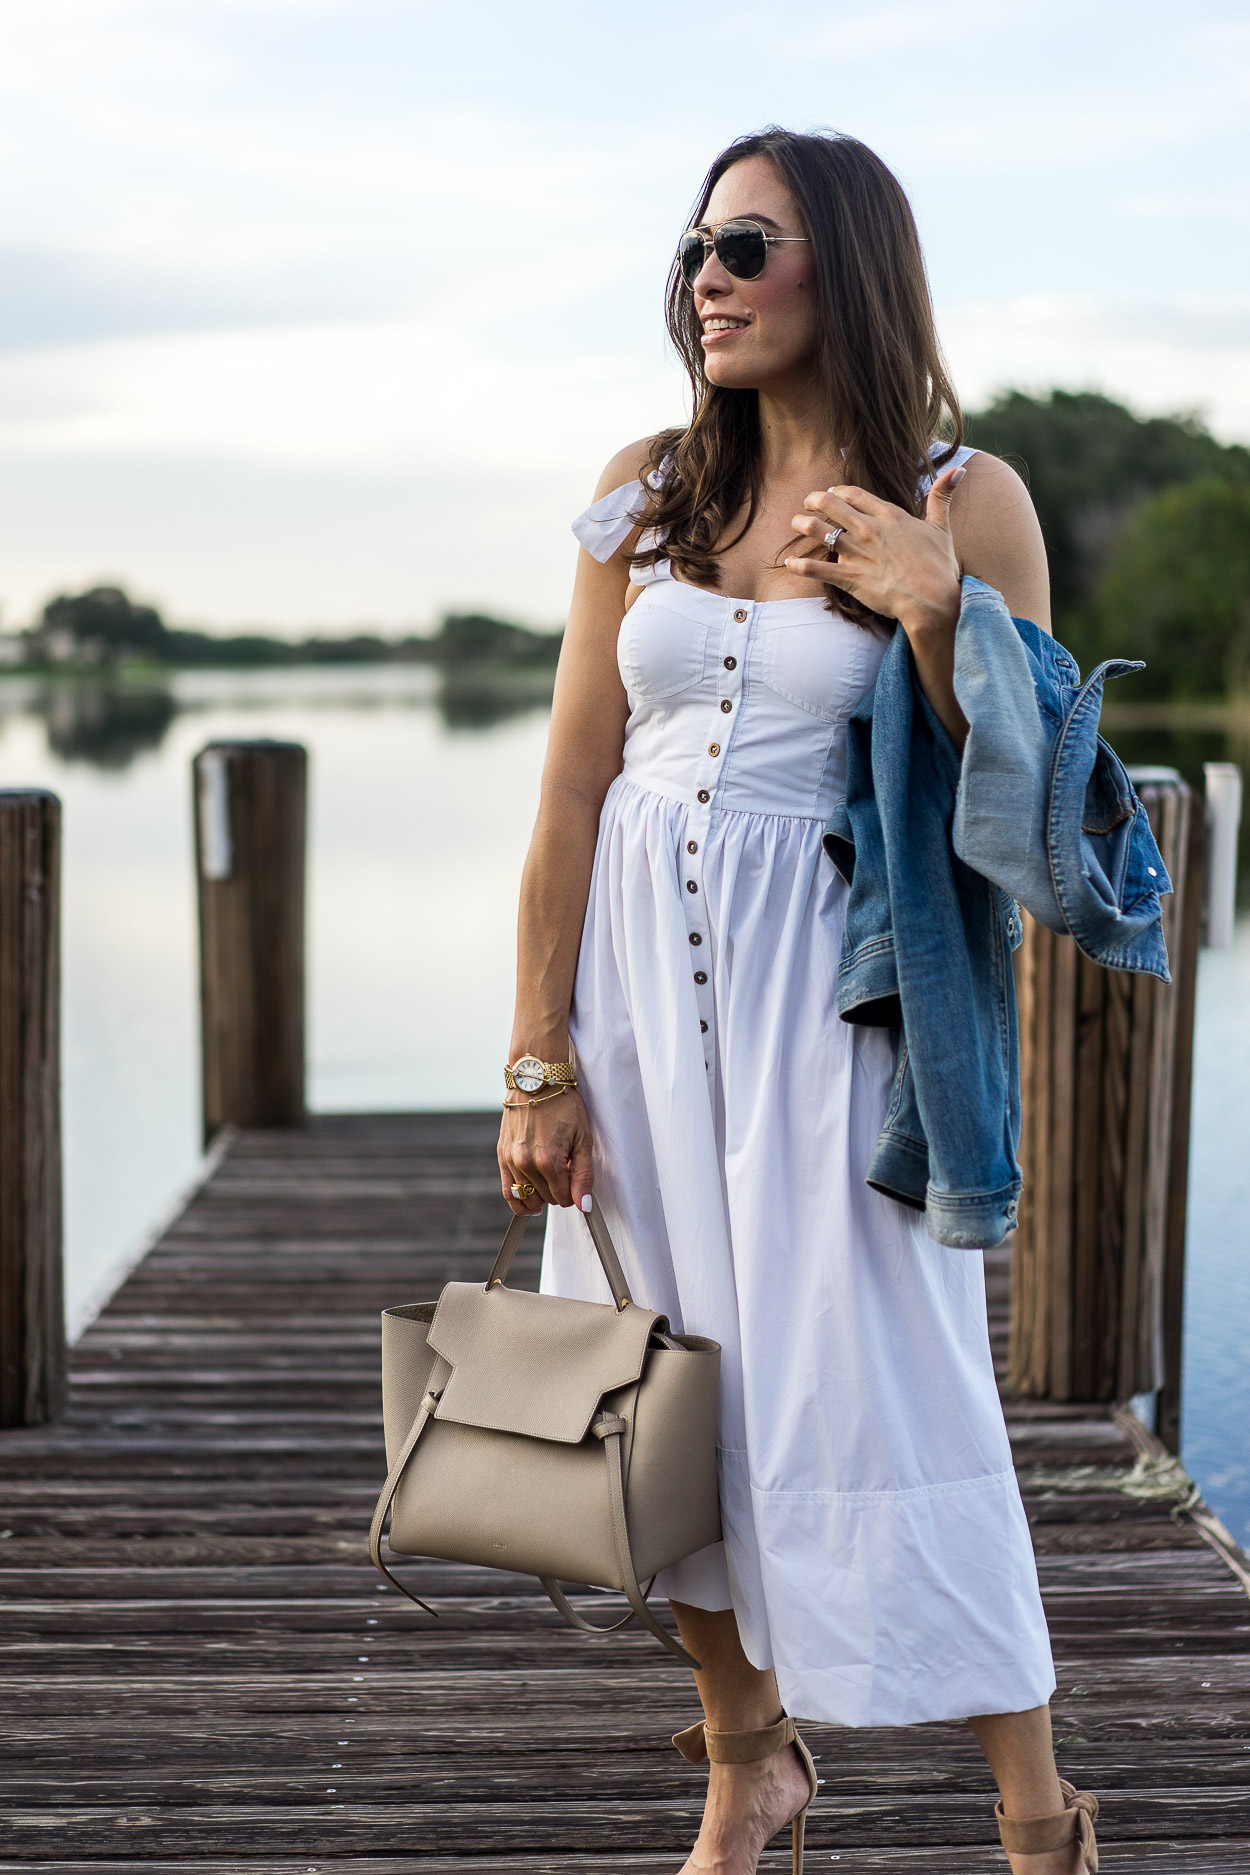 Chic Summer white dress worn by blogger Amanda of A Glam Lifestyle with Celine belt bag and AG Jeans denim jacket